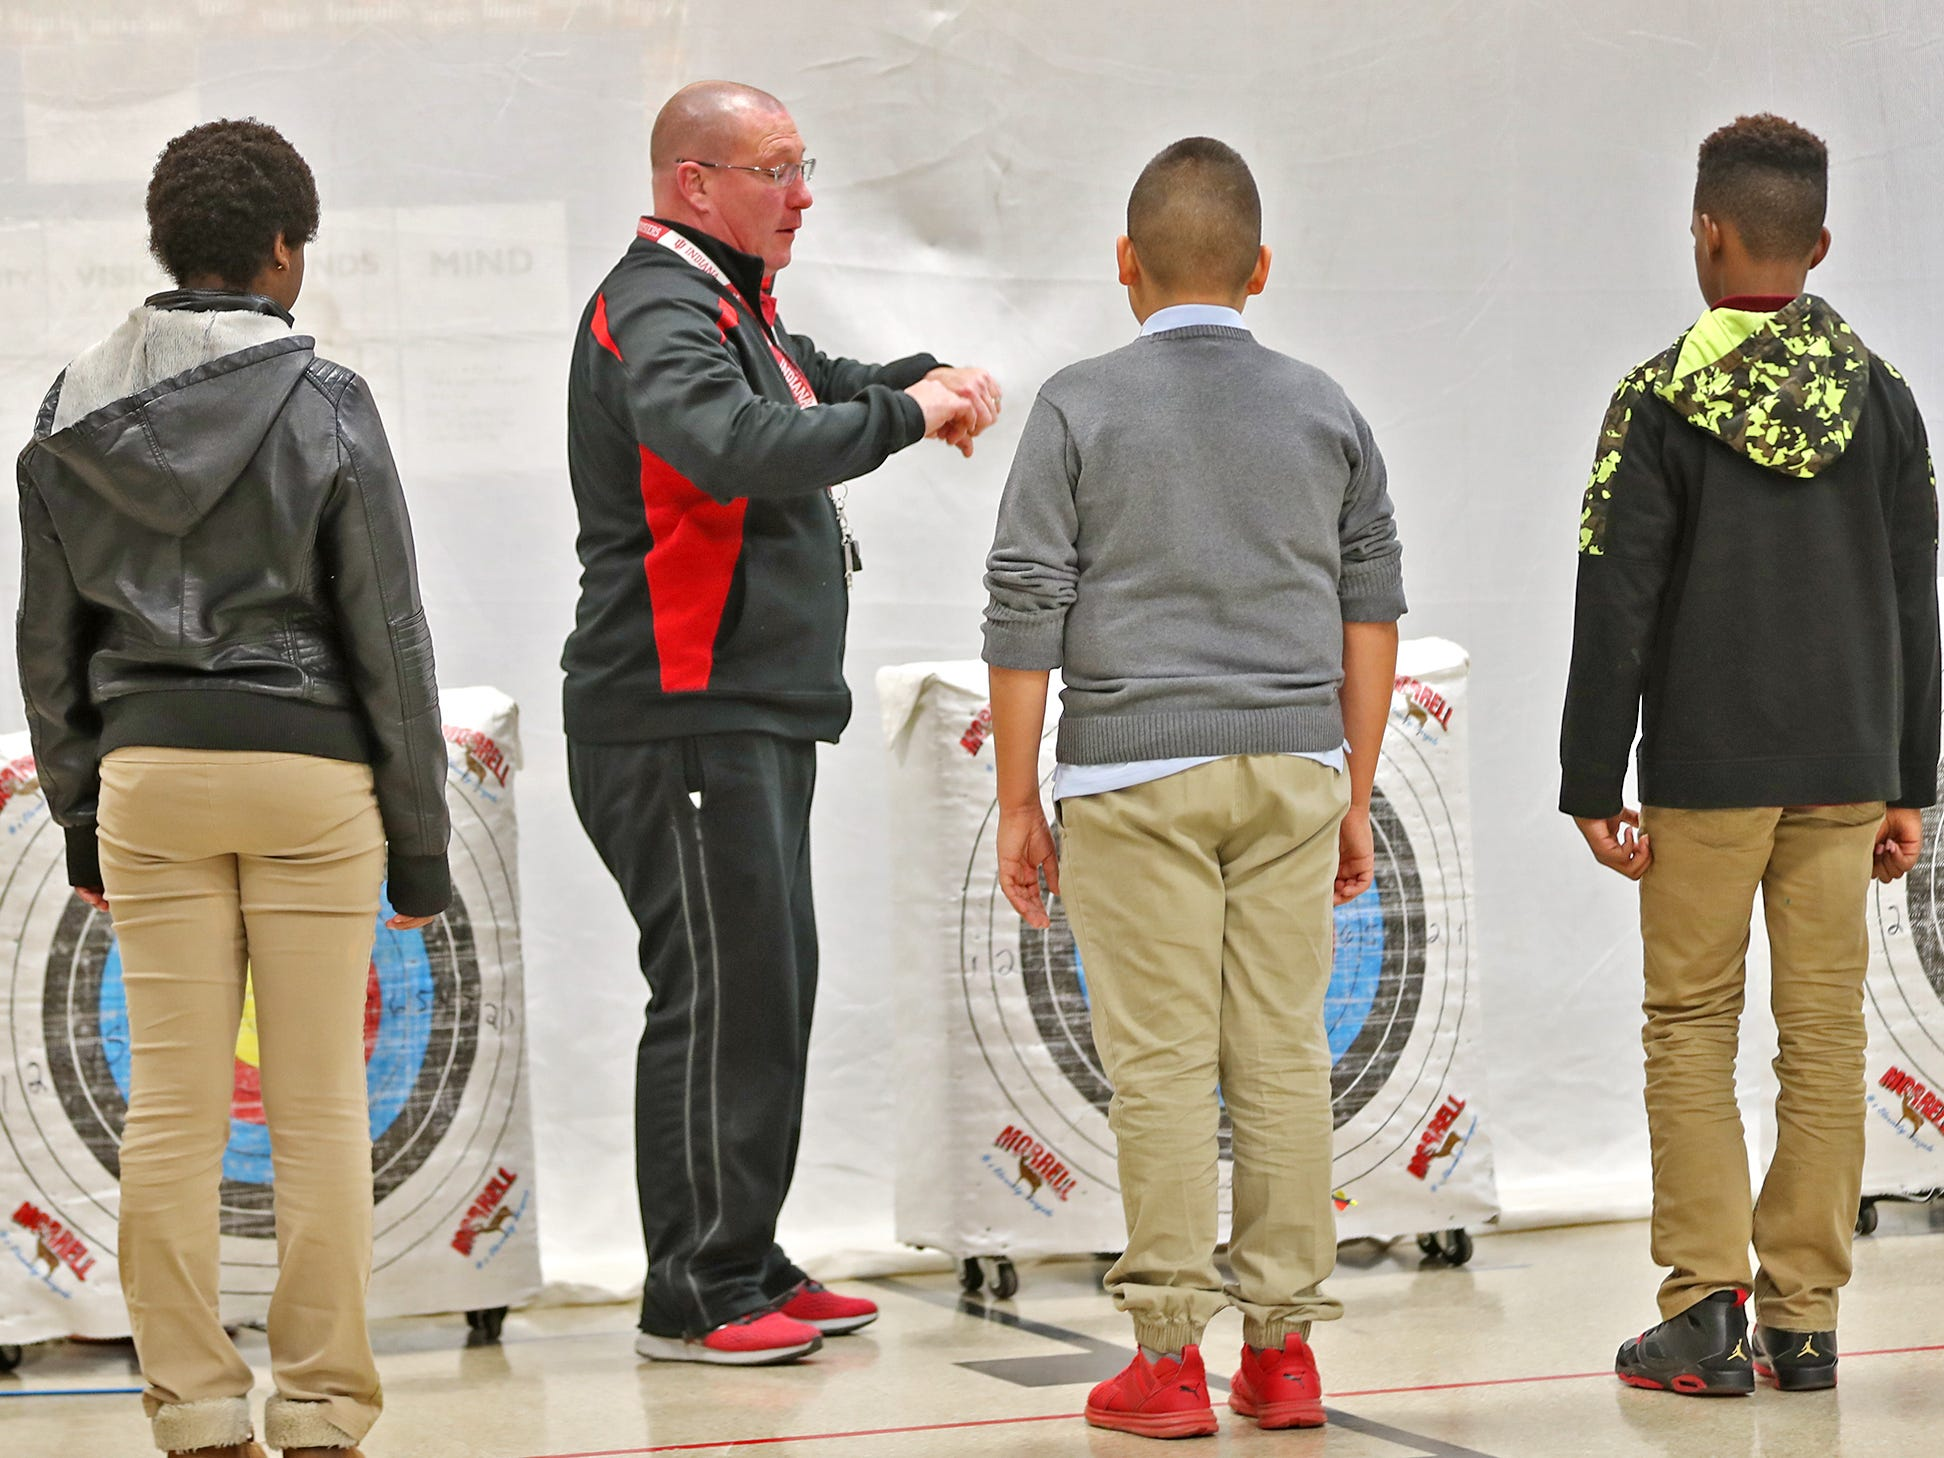 William Crawford gives instruction on picking up arrows that sixth graders shot during archery class at Lew Wallace Elementary IPS 107, Thursday, Dec. 20, 2018.